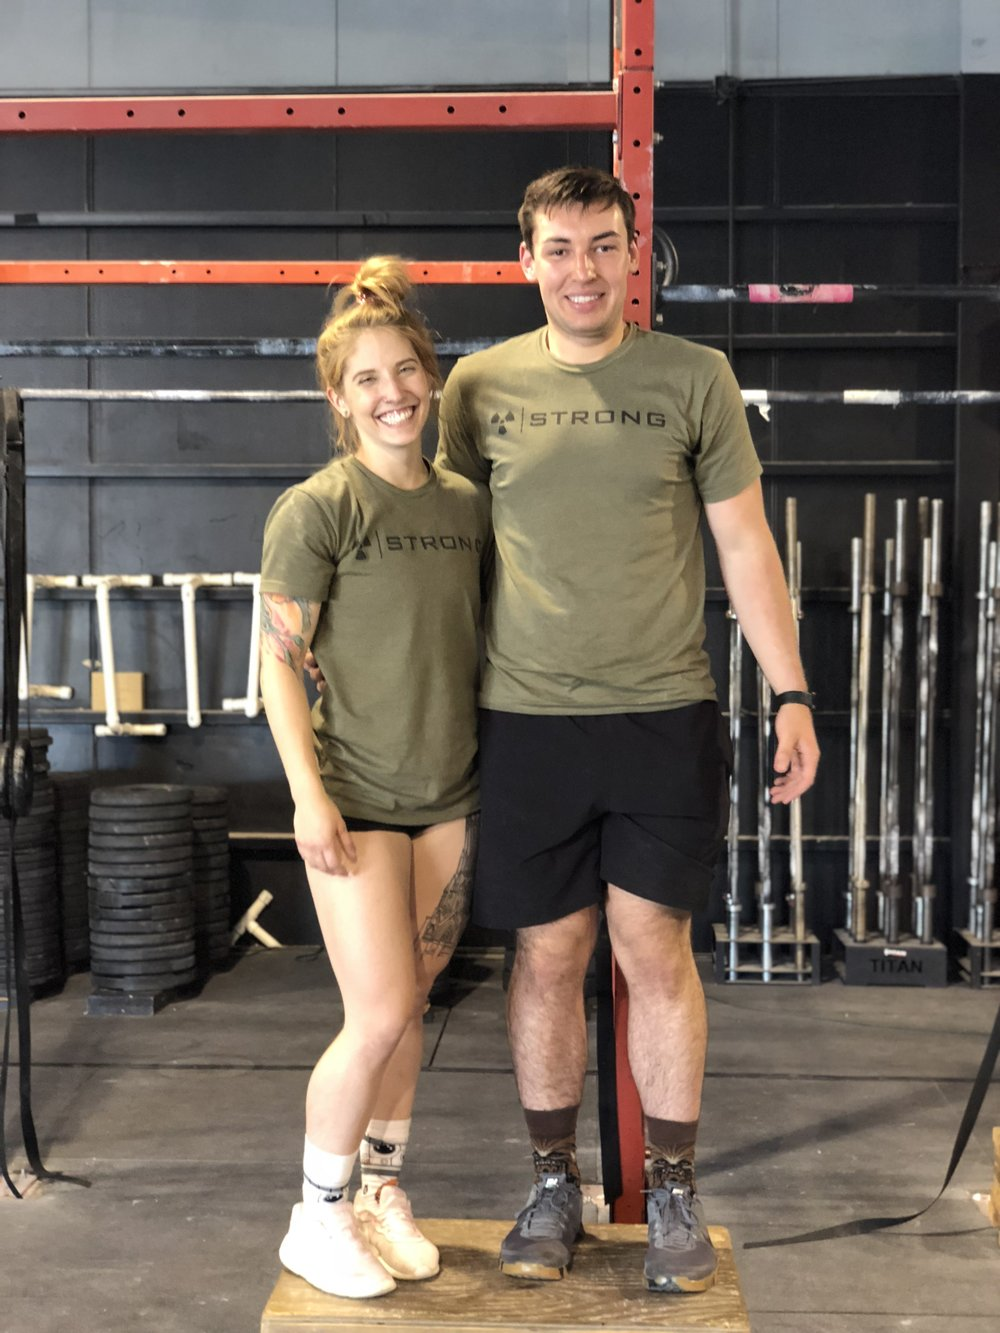 Zack and Liz won the Tough as Nails charity competition!